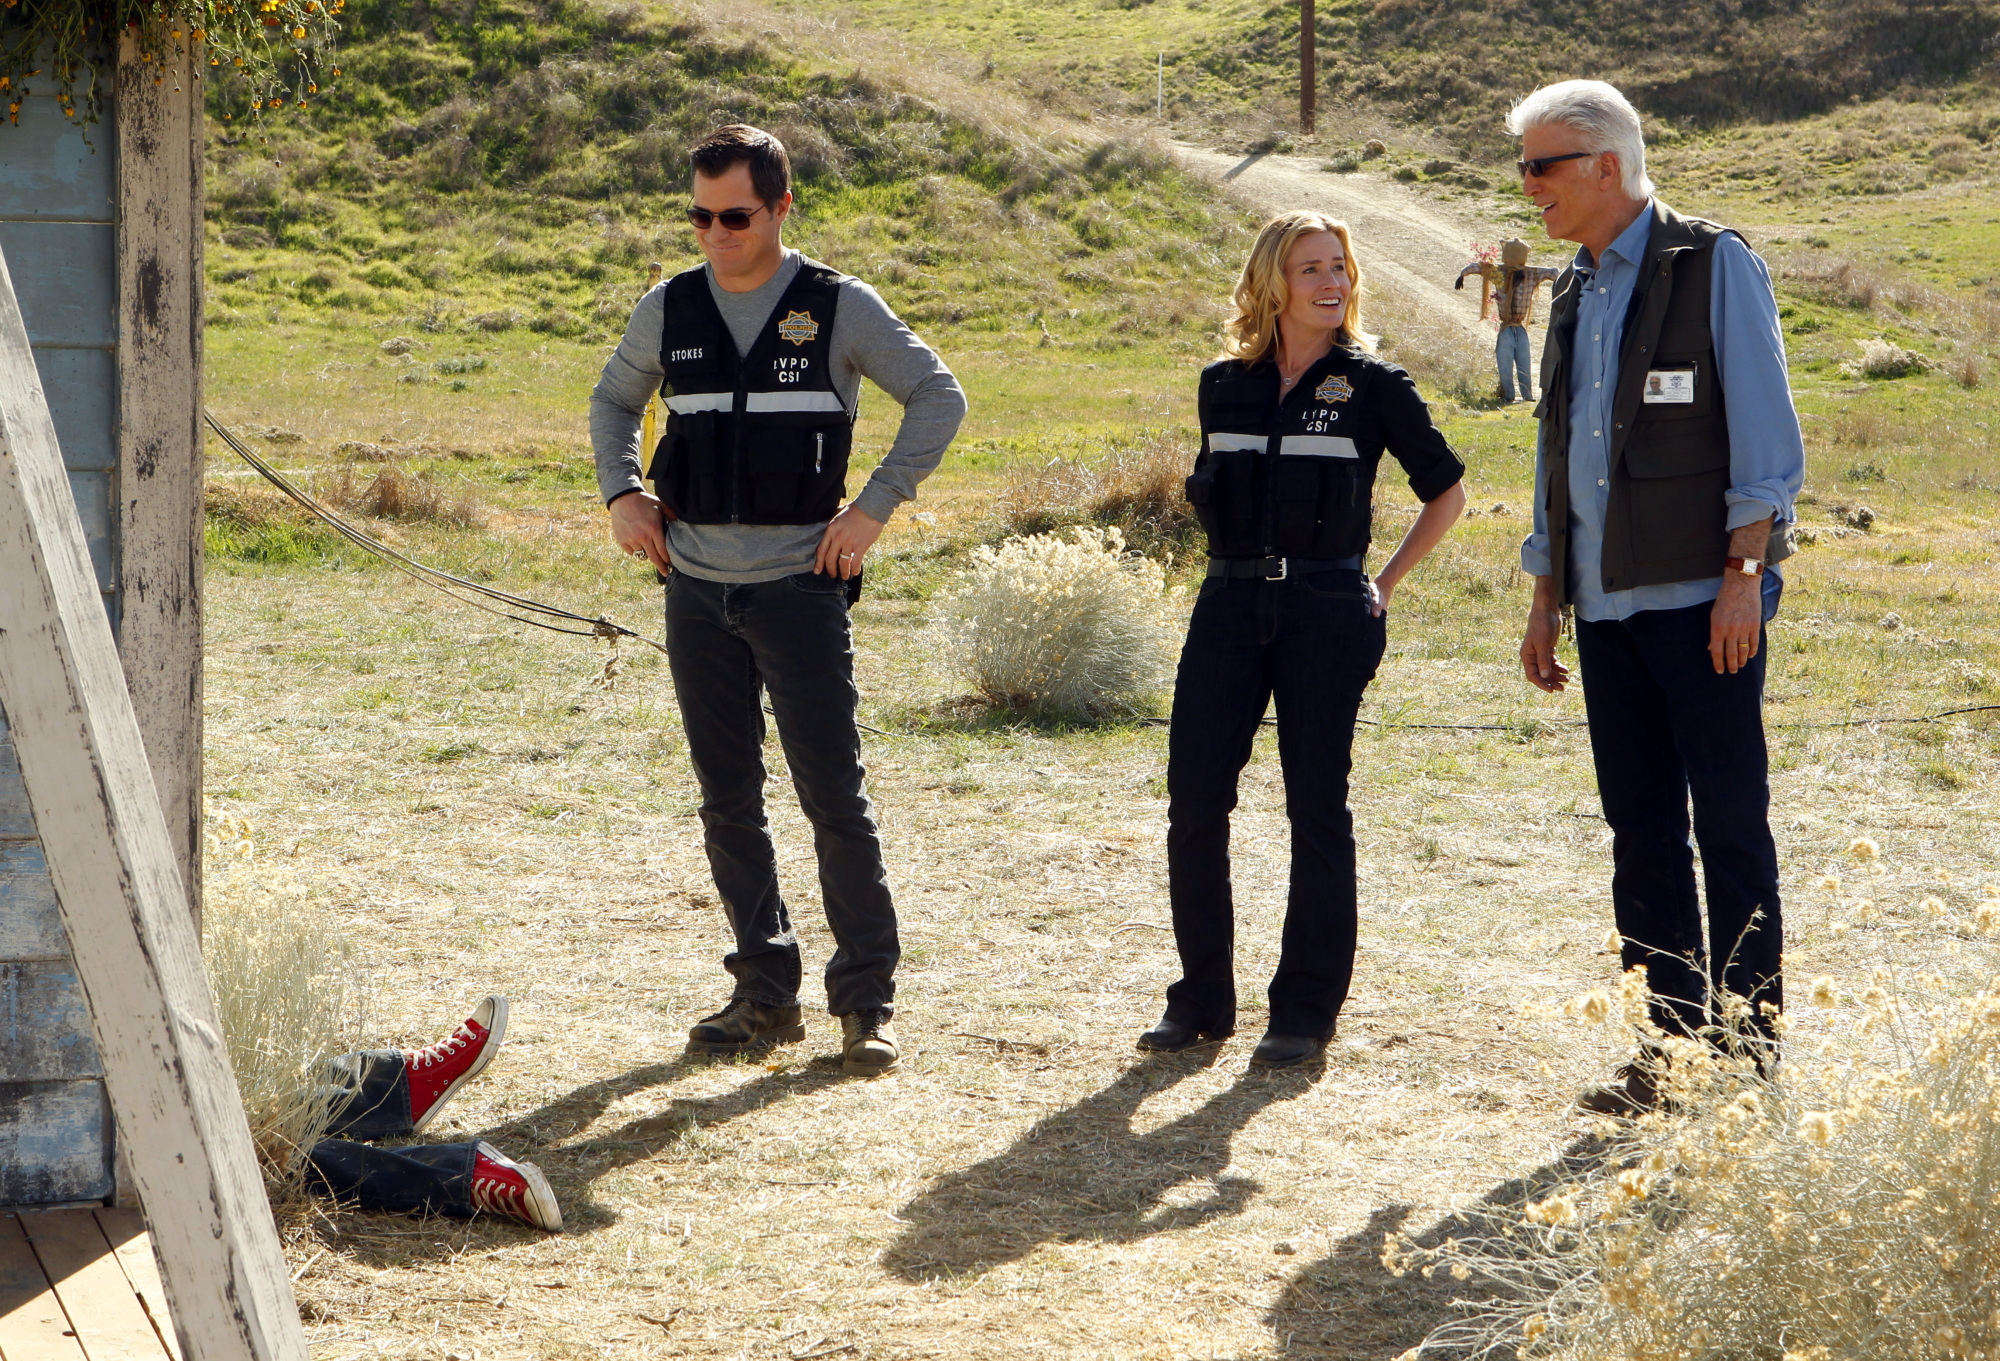 CSI Renewed!